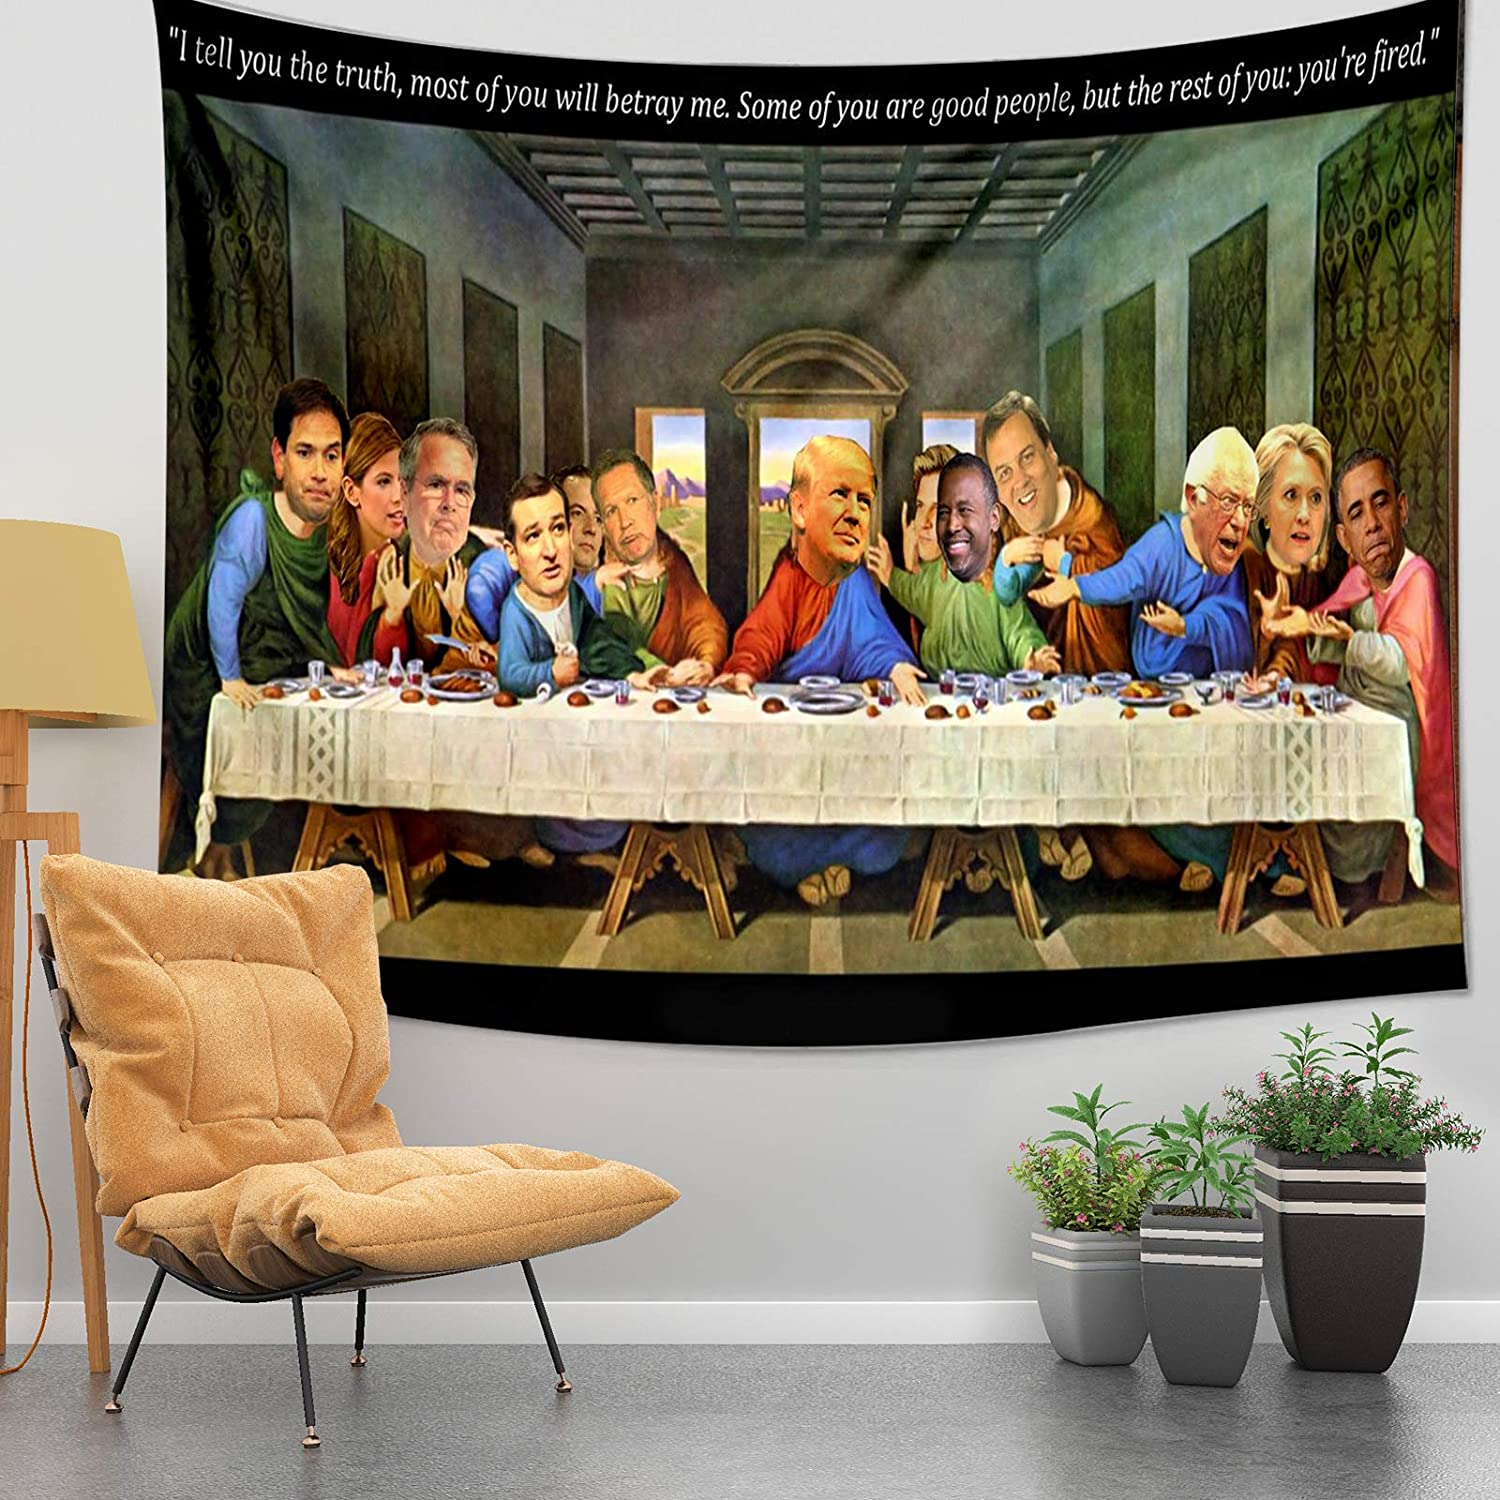 Funny Tapestry Tru-m-p's last s-up-per Art Tapestries Wall Décor for Dorm Bedroom Home Decor 60*40in